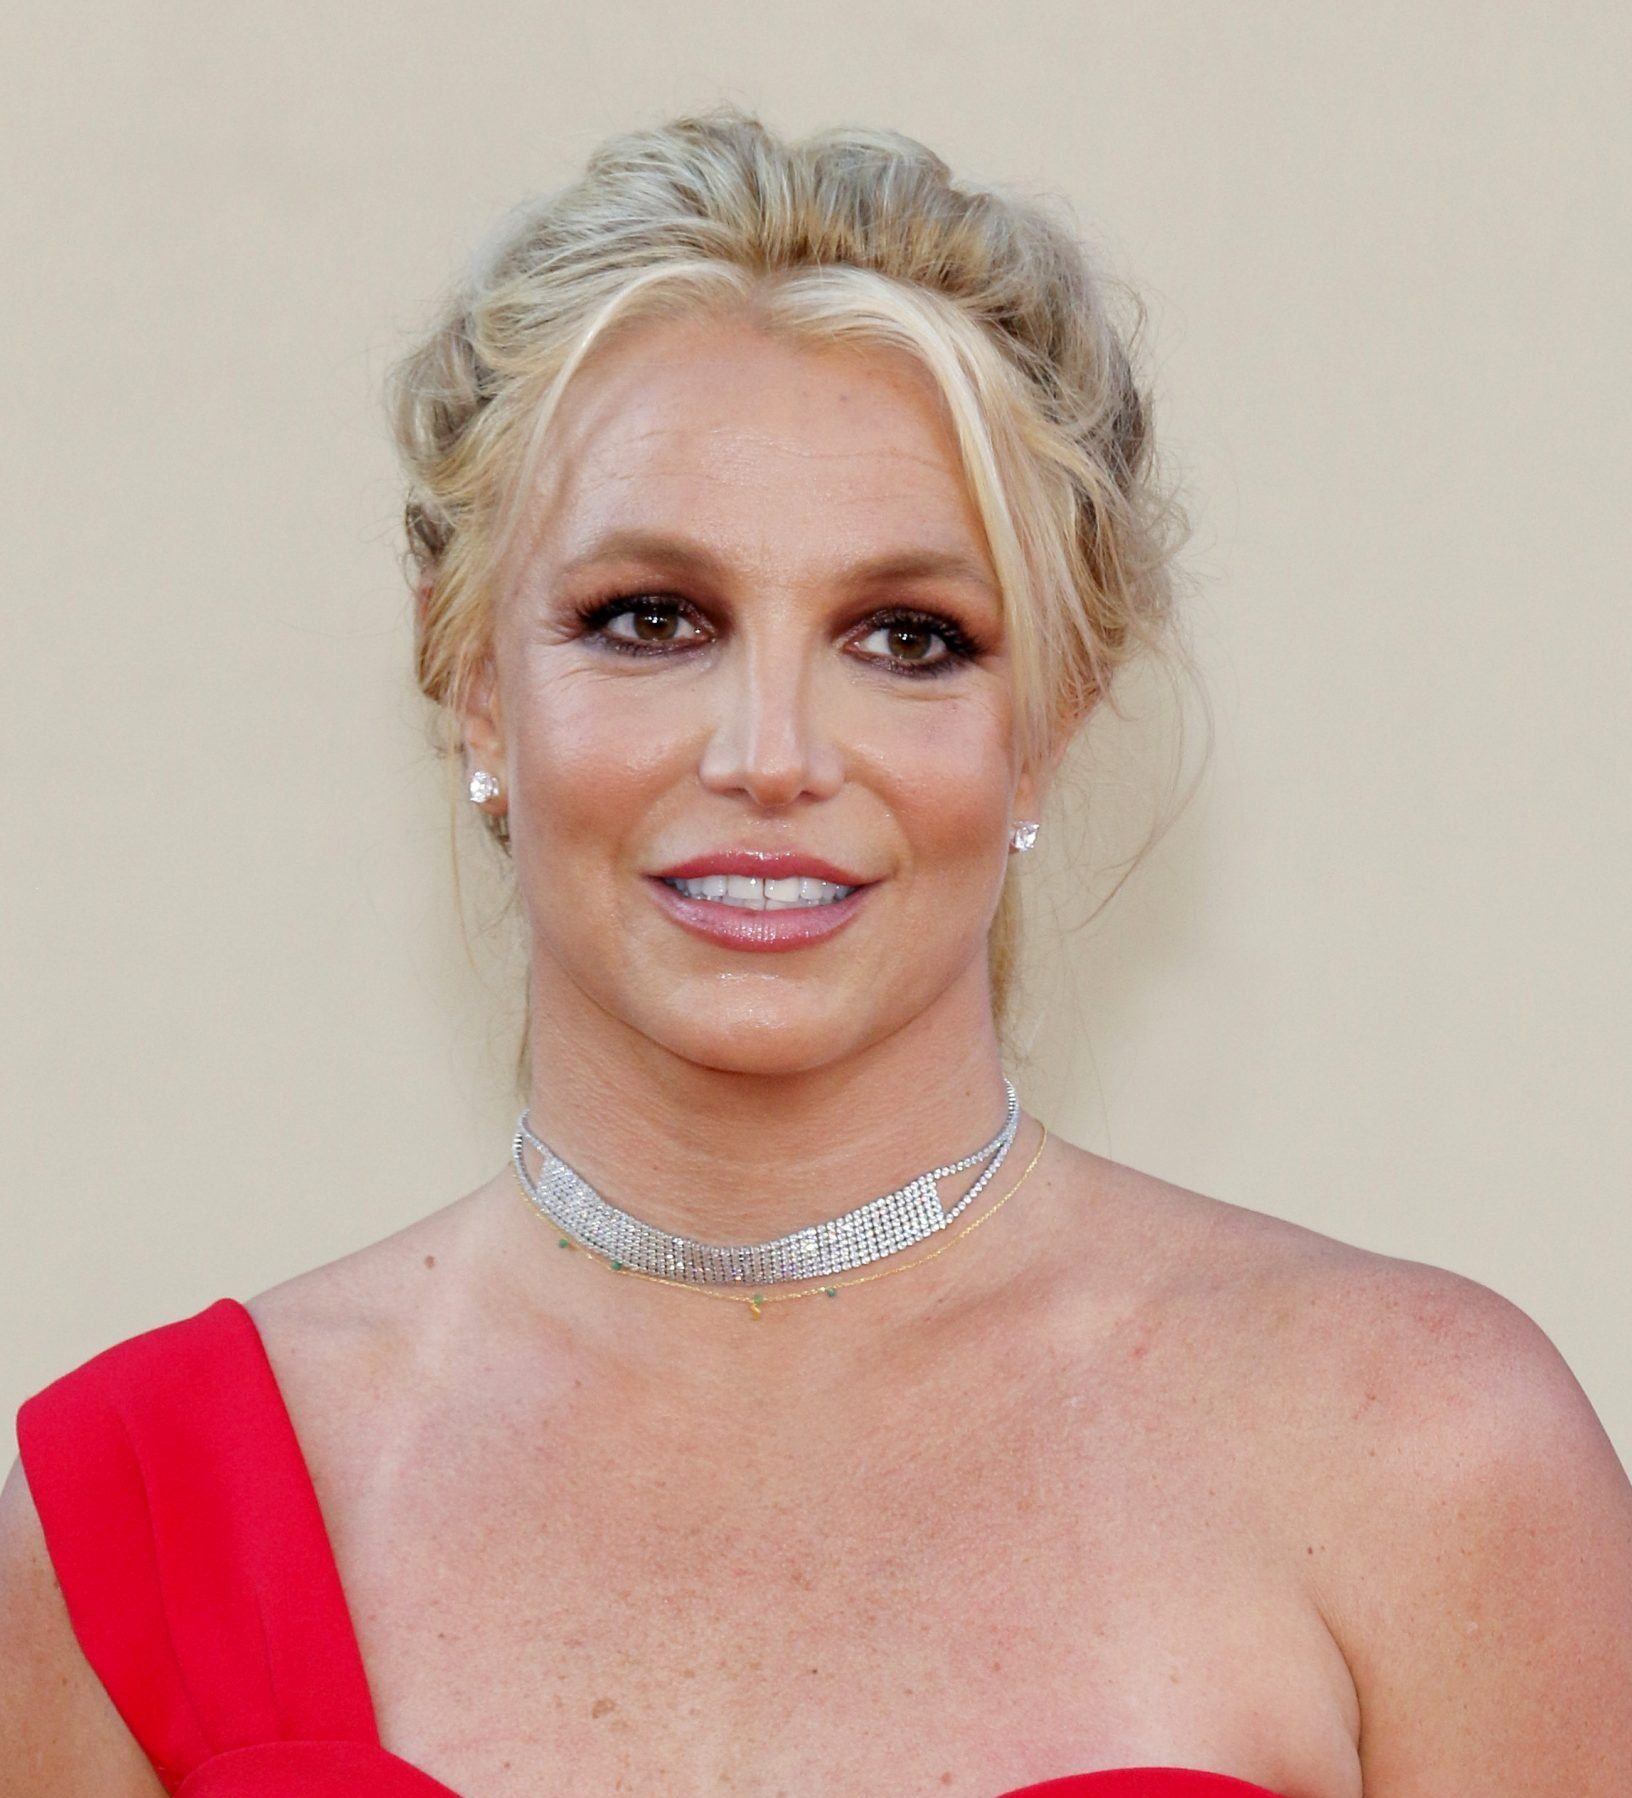 Britney Spears attends an outdoor event. She wears a one shoulder red dress and has her blonde hair styled up.